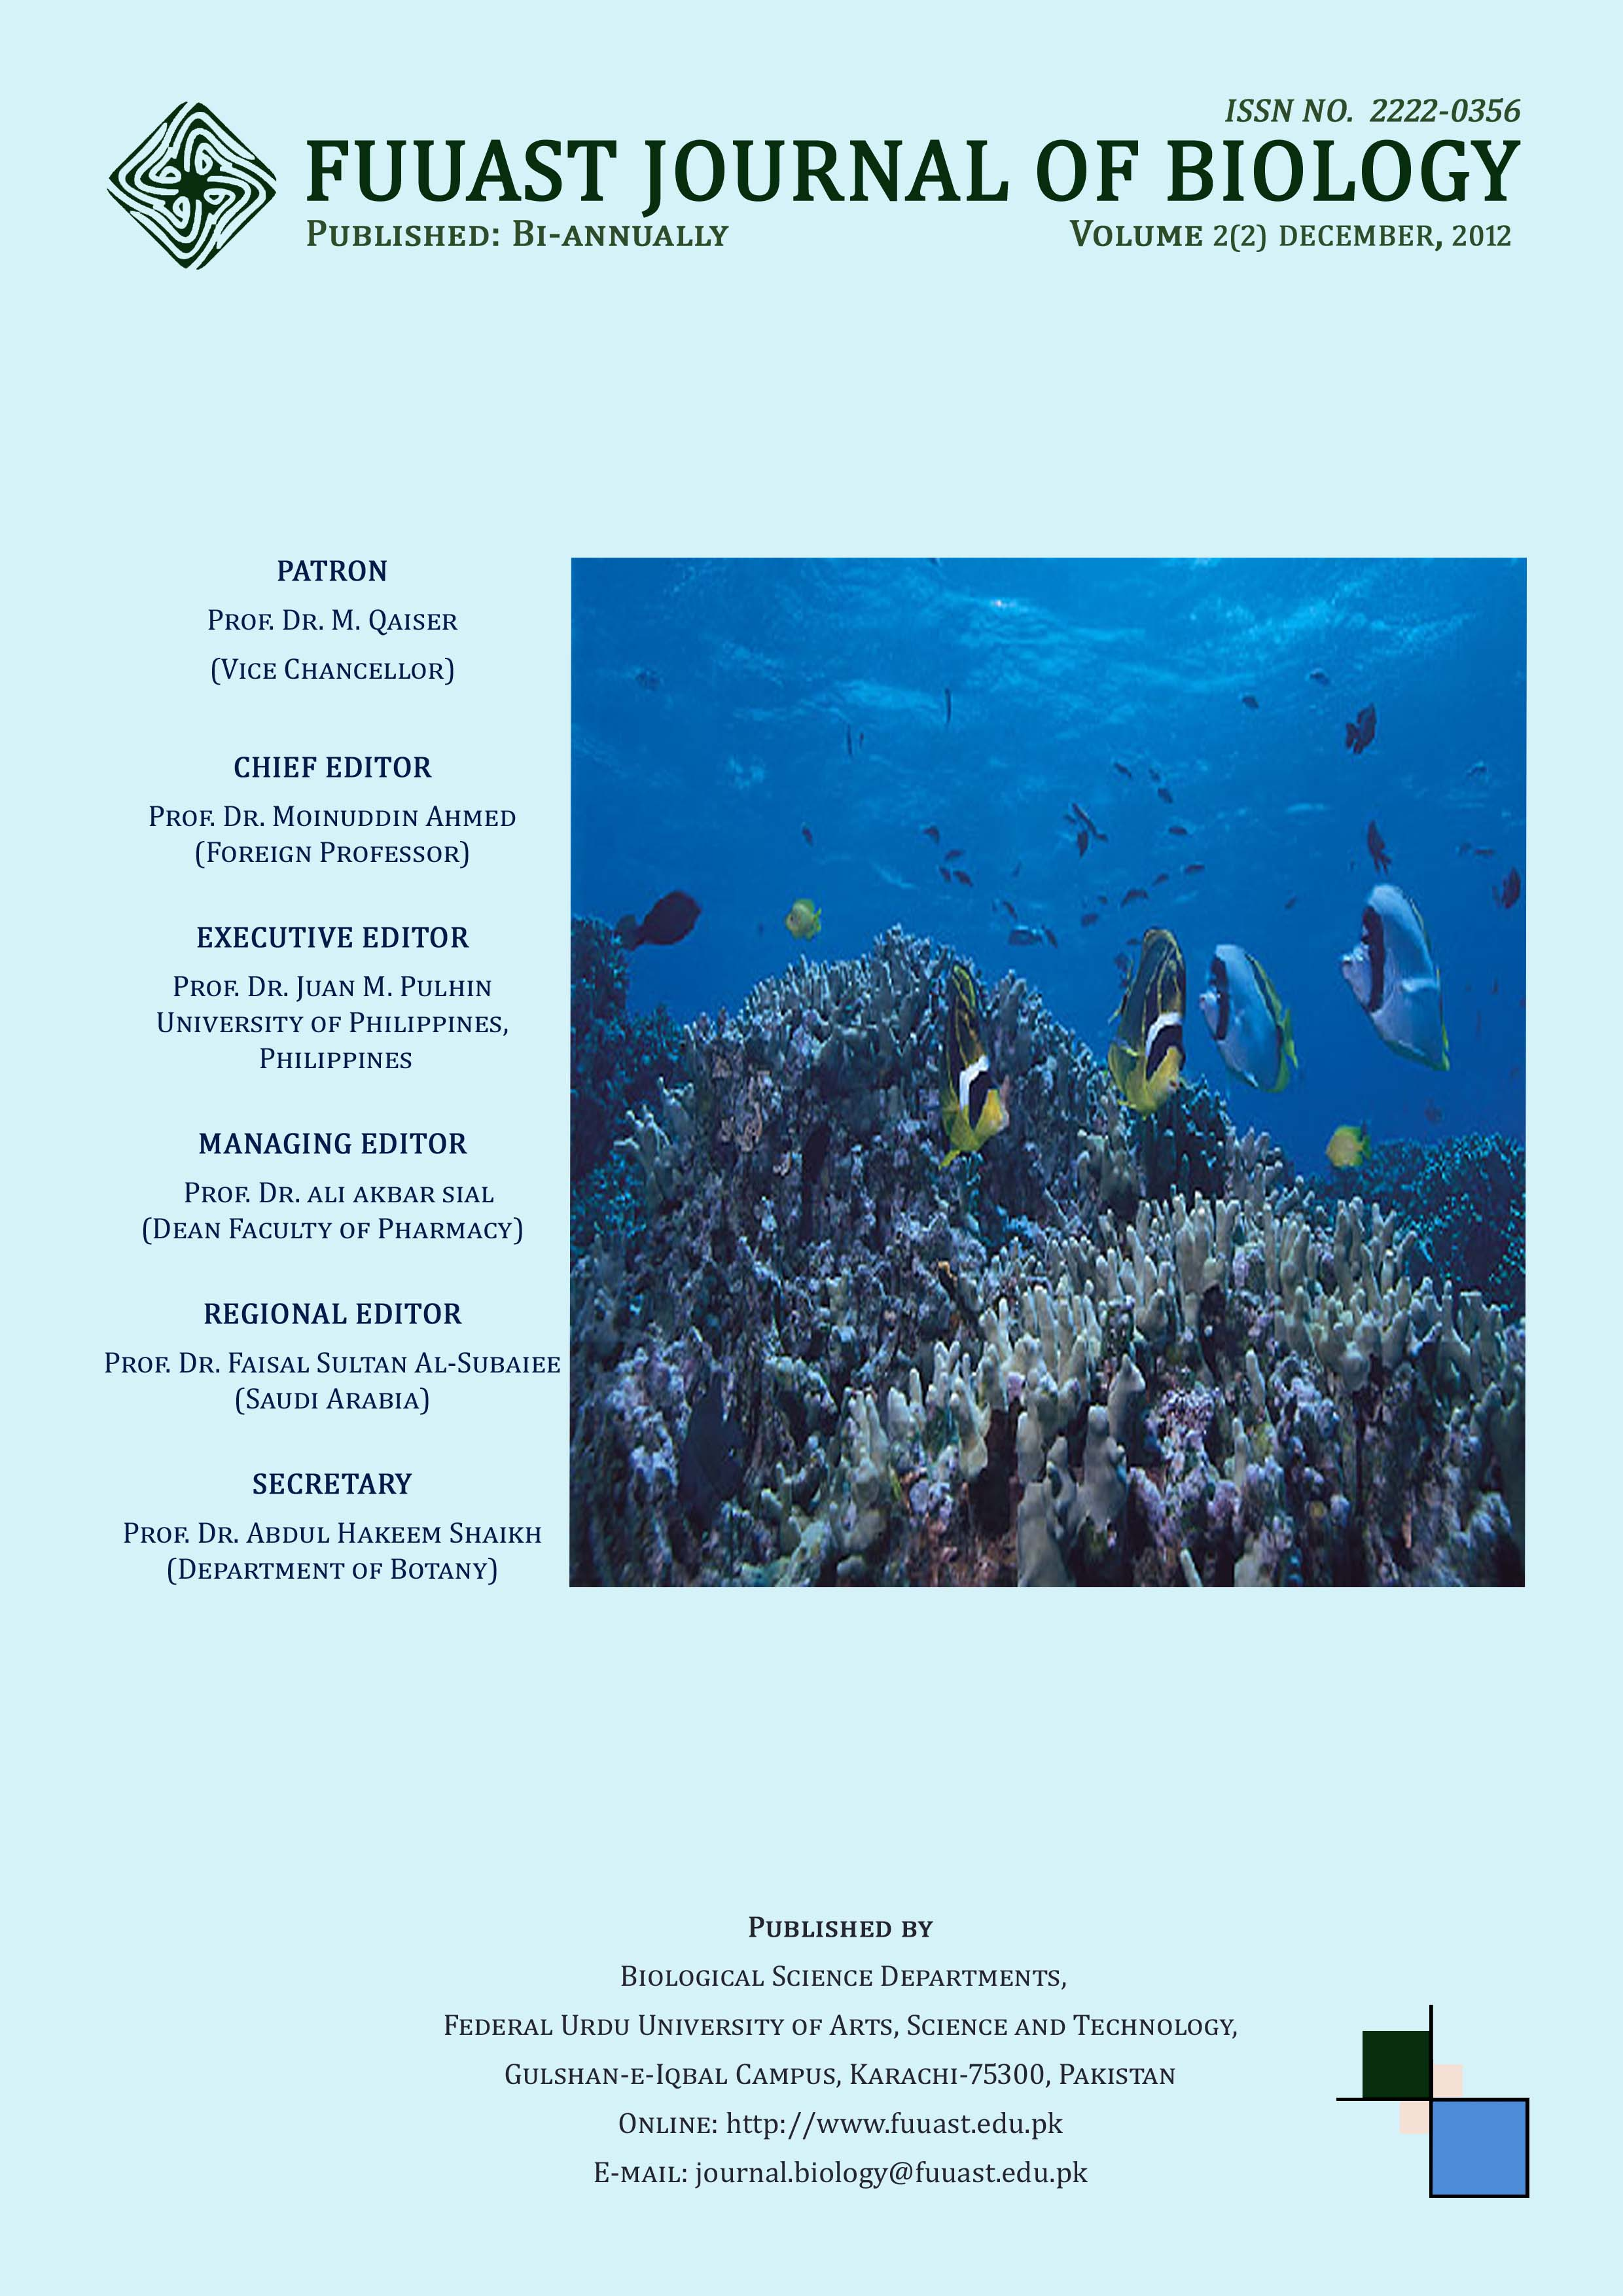 View Vol. 2 No. 2 December (2012): Fuuast Journal of Biology